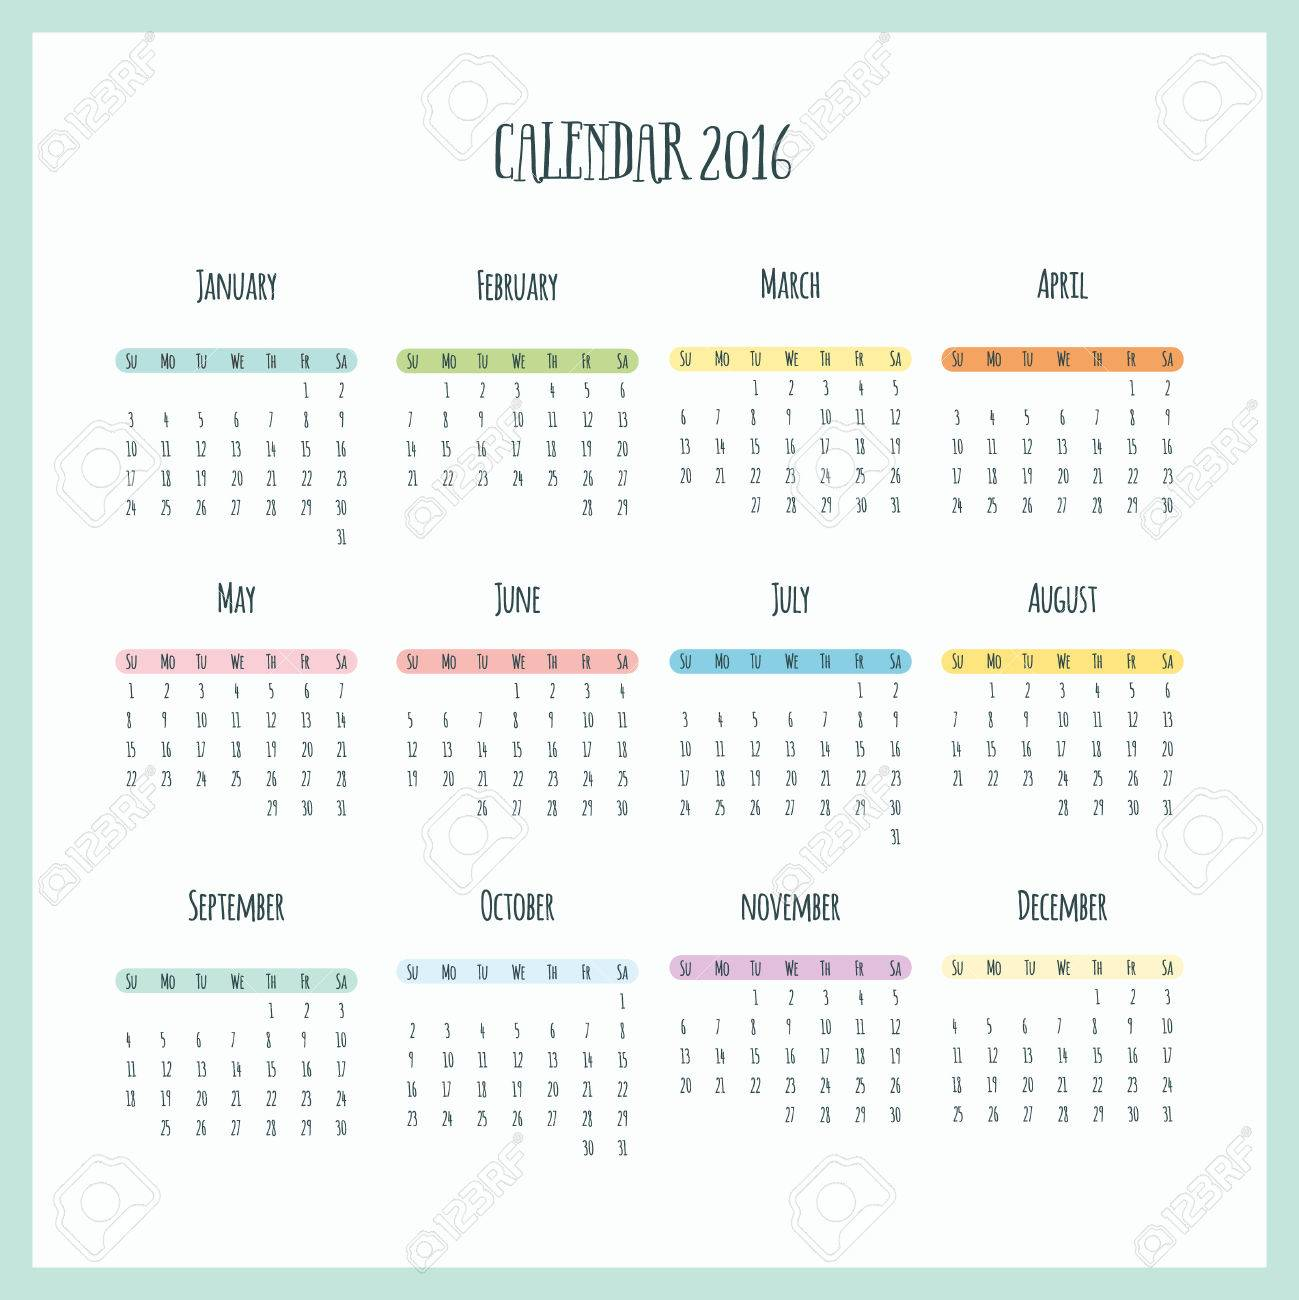 Office Calendar 2016 : Calendar colorful modern design for home and office royalty